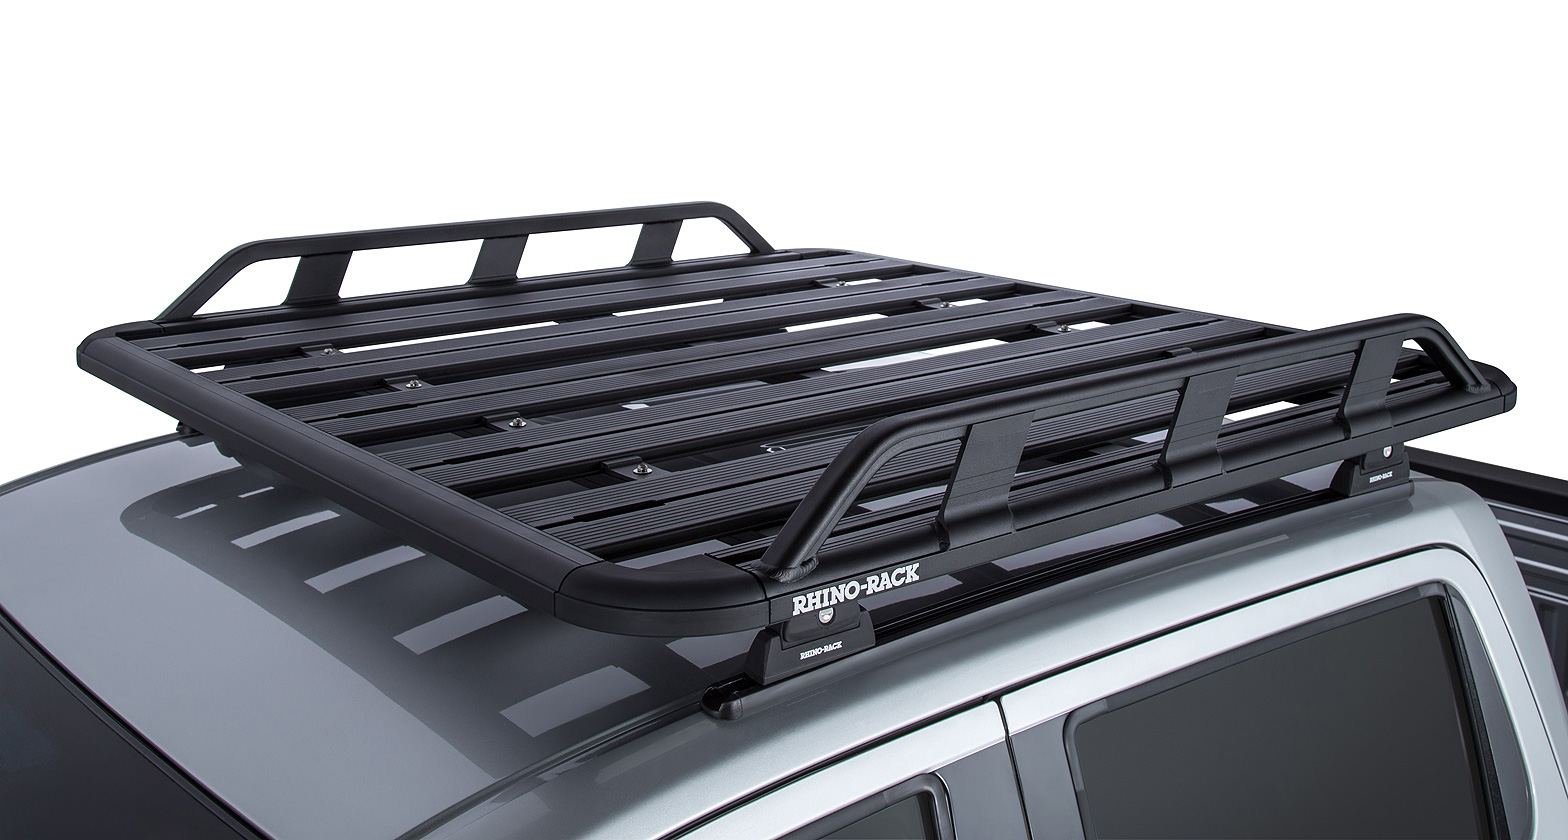 roof racks online store rack toyota accessories for platform rhino backbone cruiser detail pioneer fj